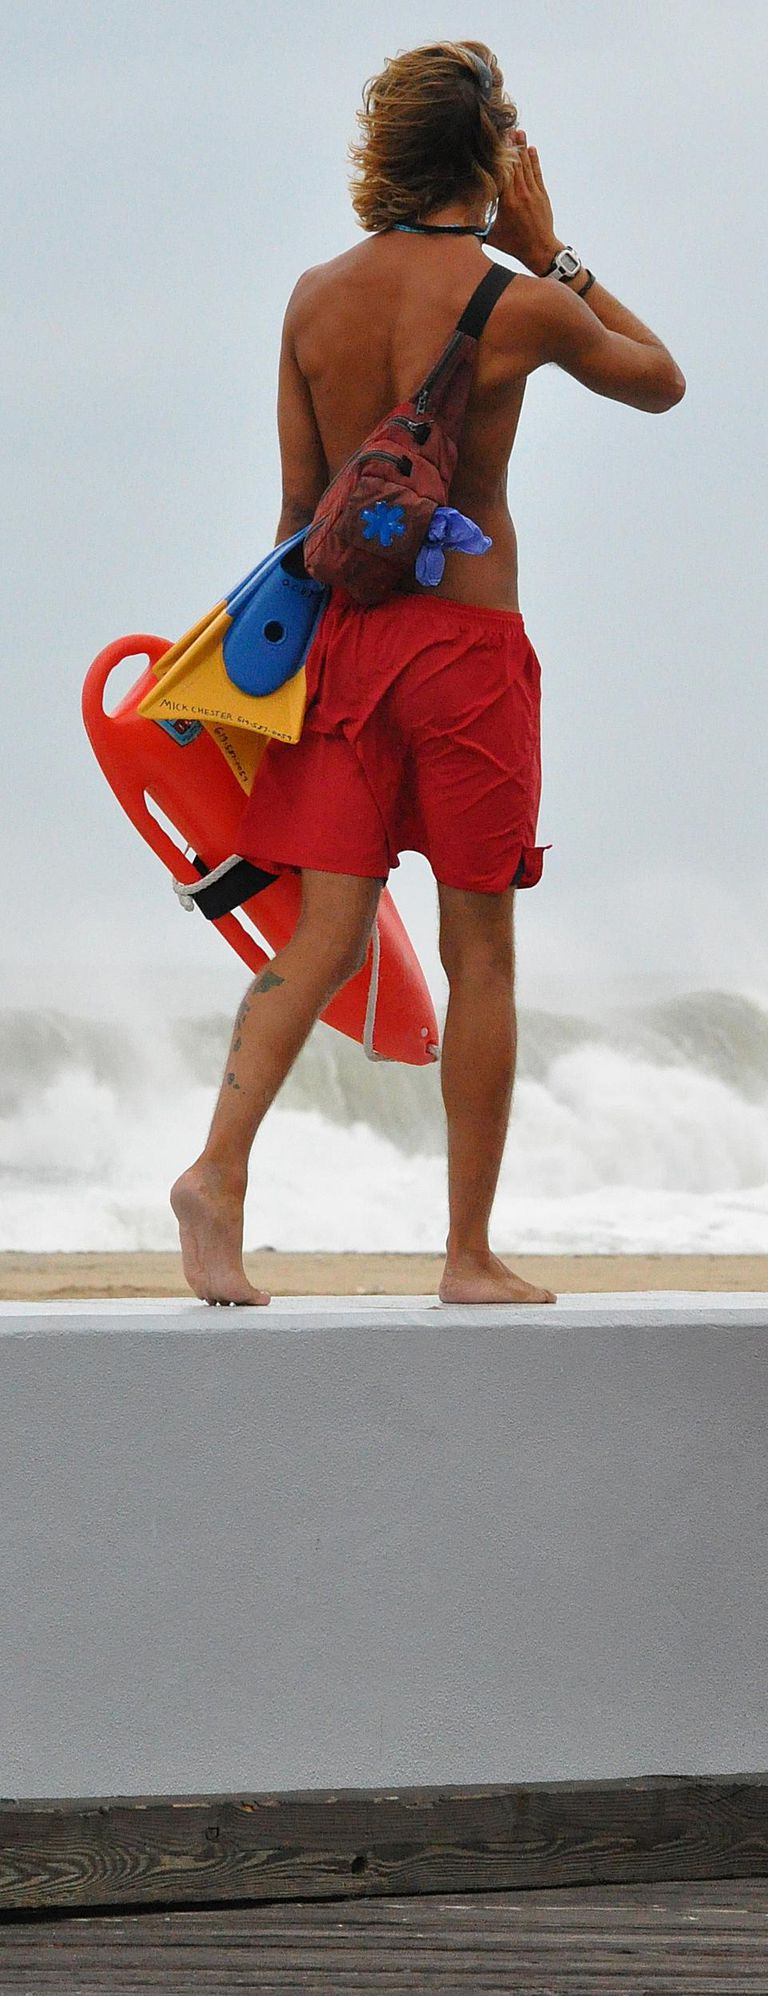 Ocean_City_Maryland_Lifeguard_Hurricane_Earl.jpg